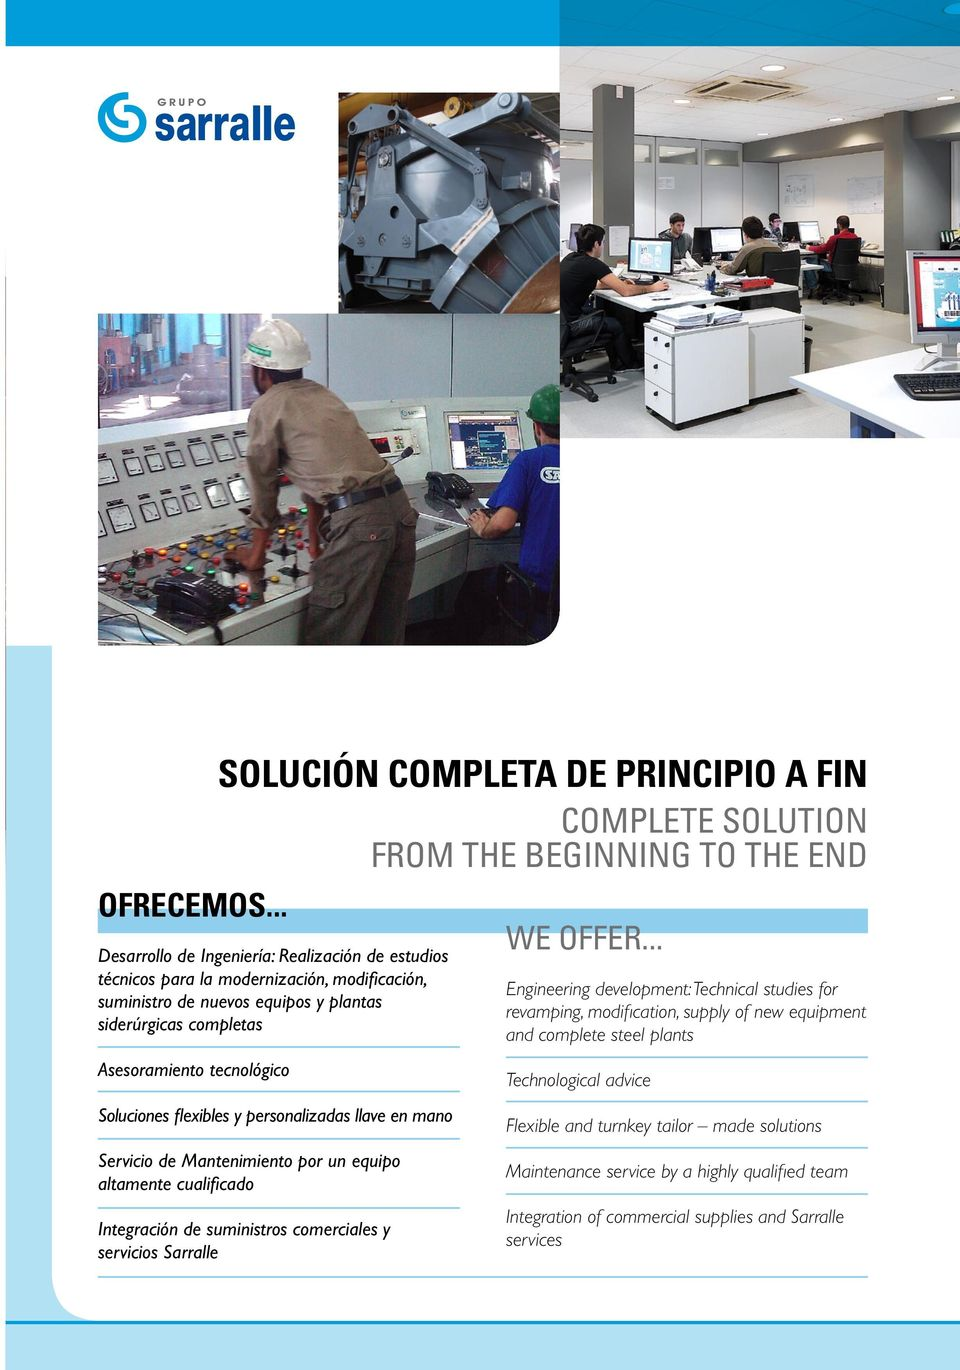 SOLUCIÓN COMPLETA DE PRINCIPIO A FIN COMPLETE SOLUTION FROM THE BEGINNING TO THE END Soluciones flexibles y personalizadas llave en mano Servicio de Mantenimiento por un equipo altamente